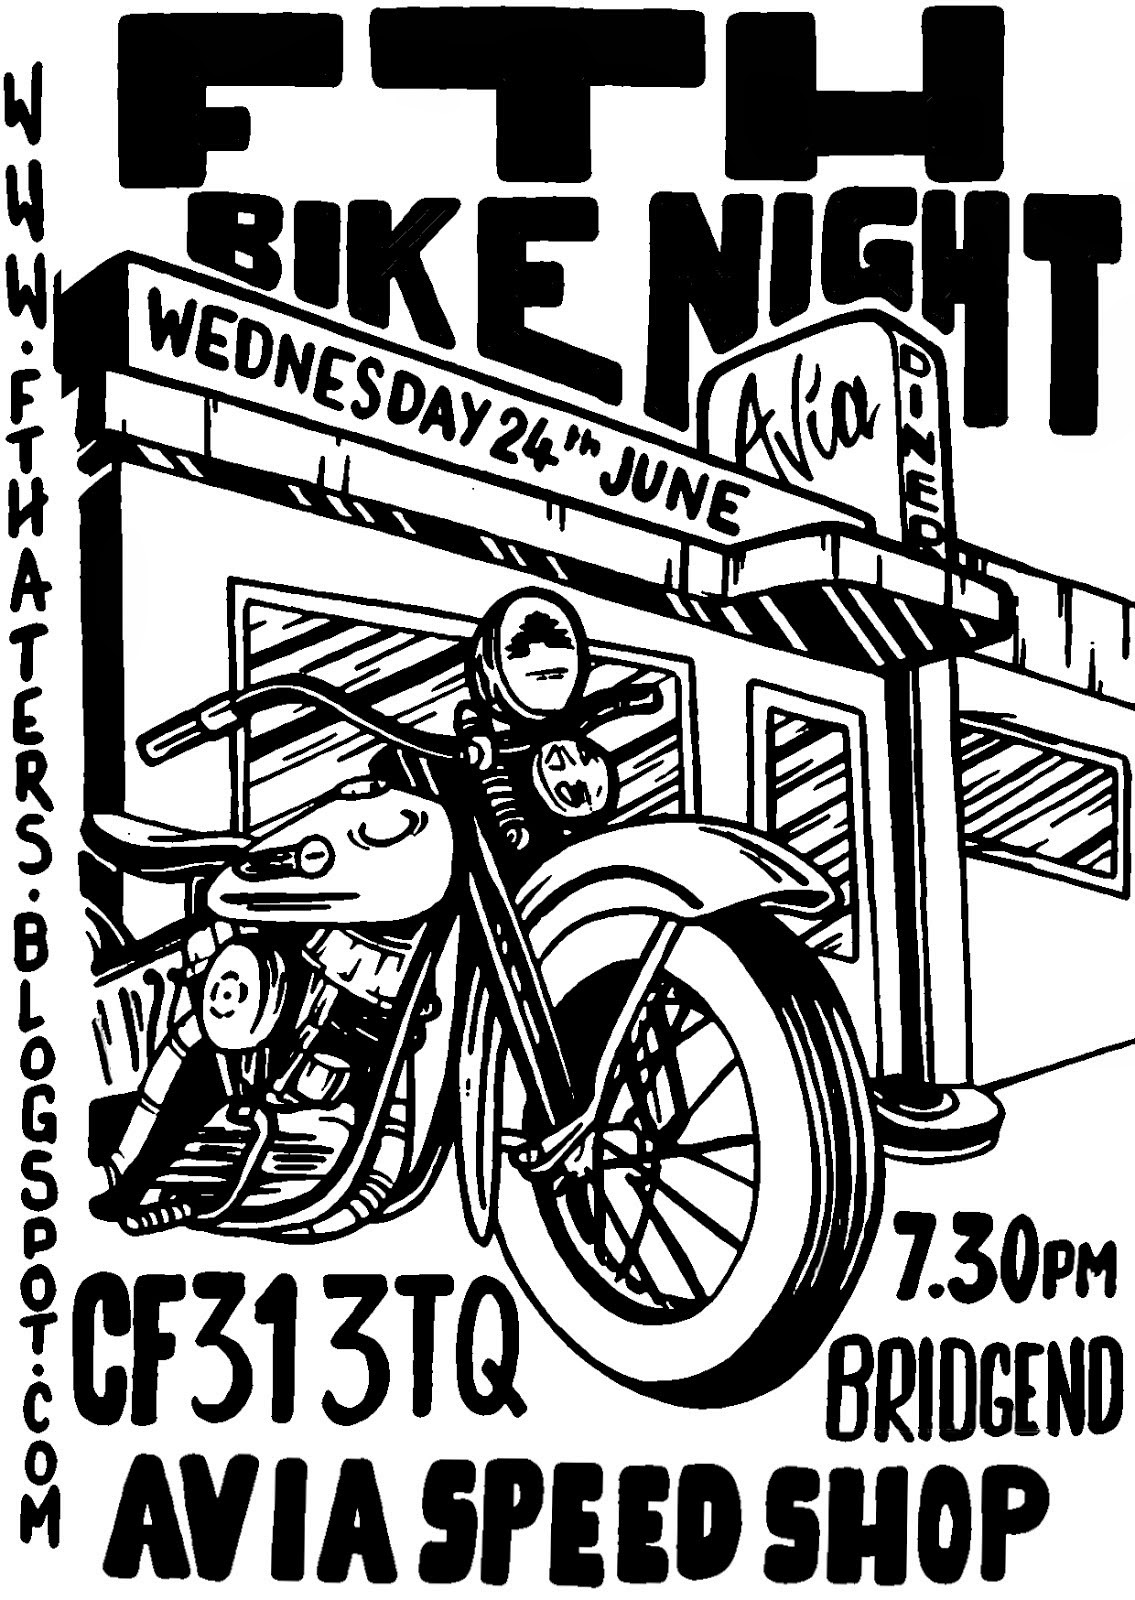 June Bike Night